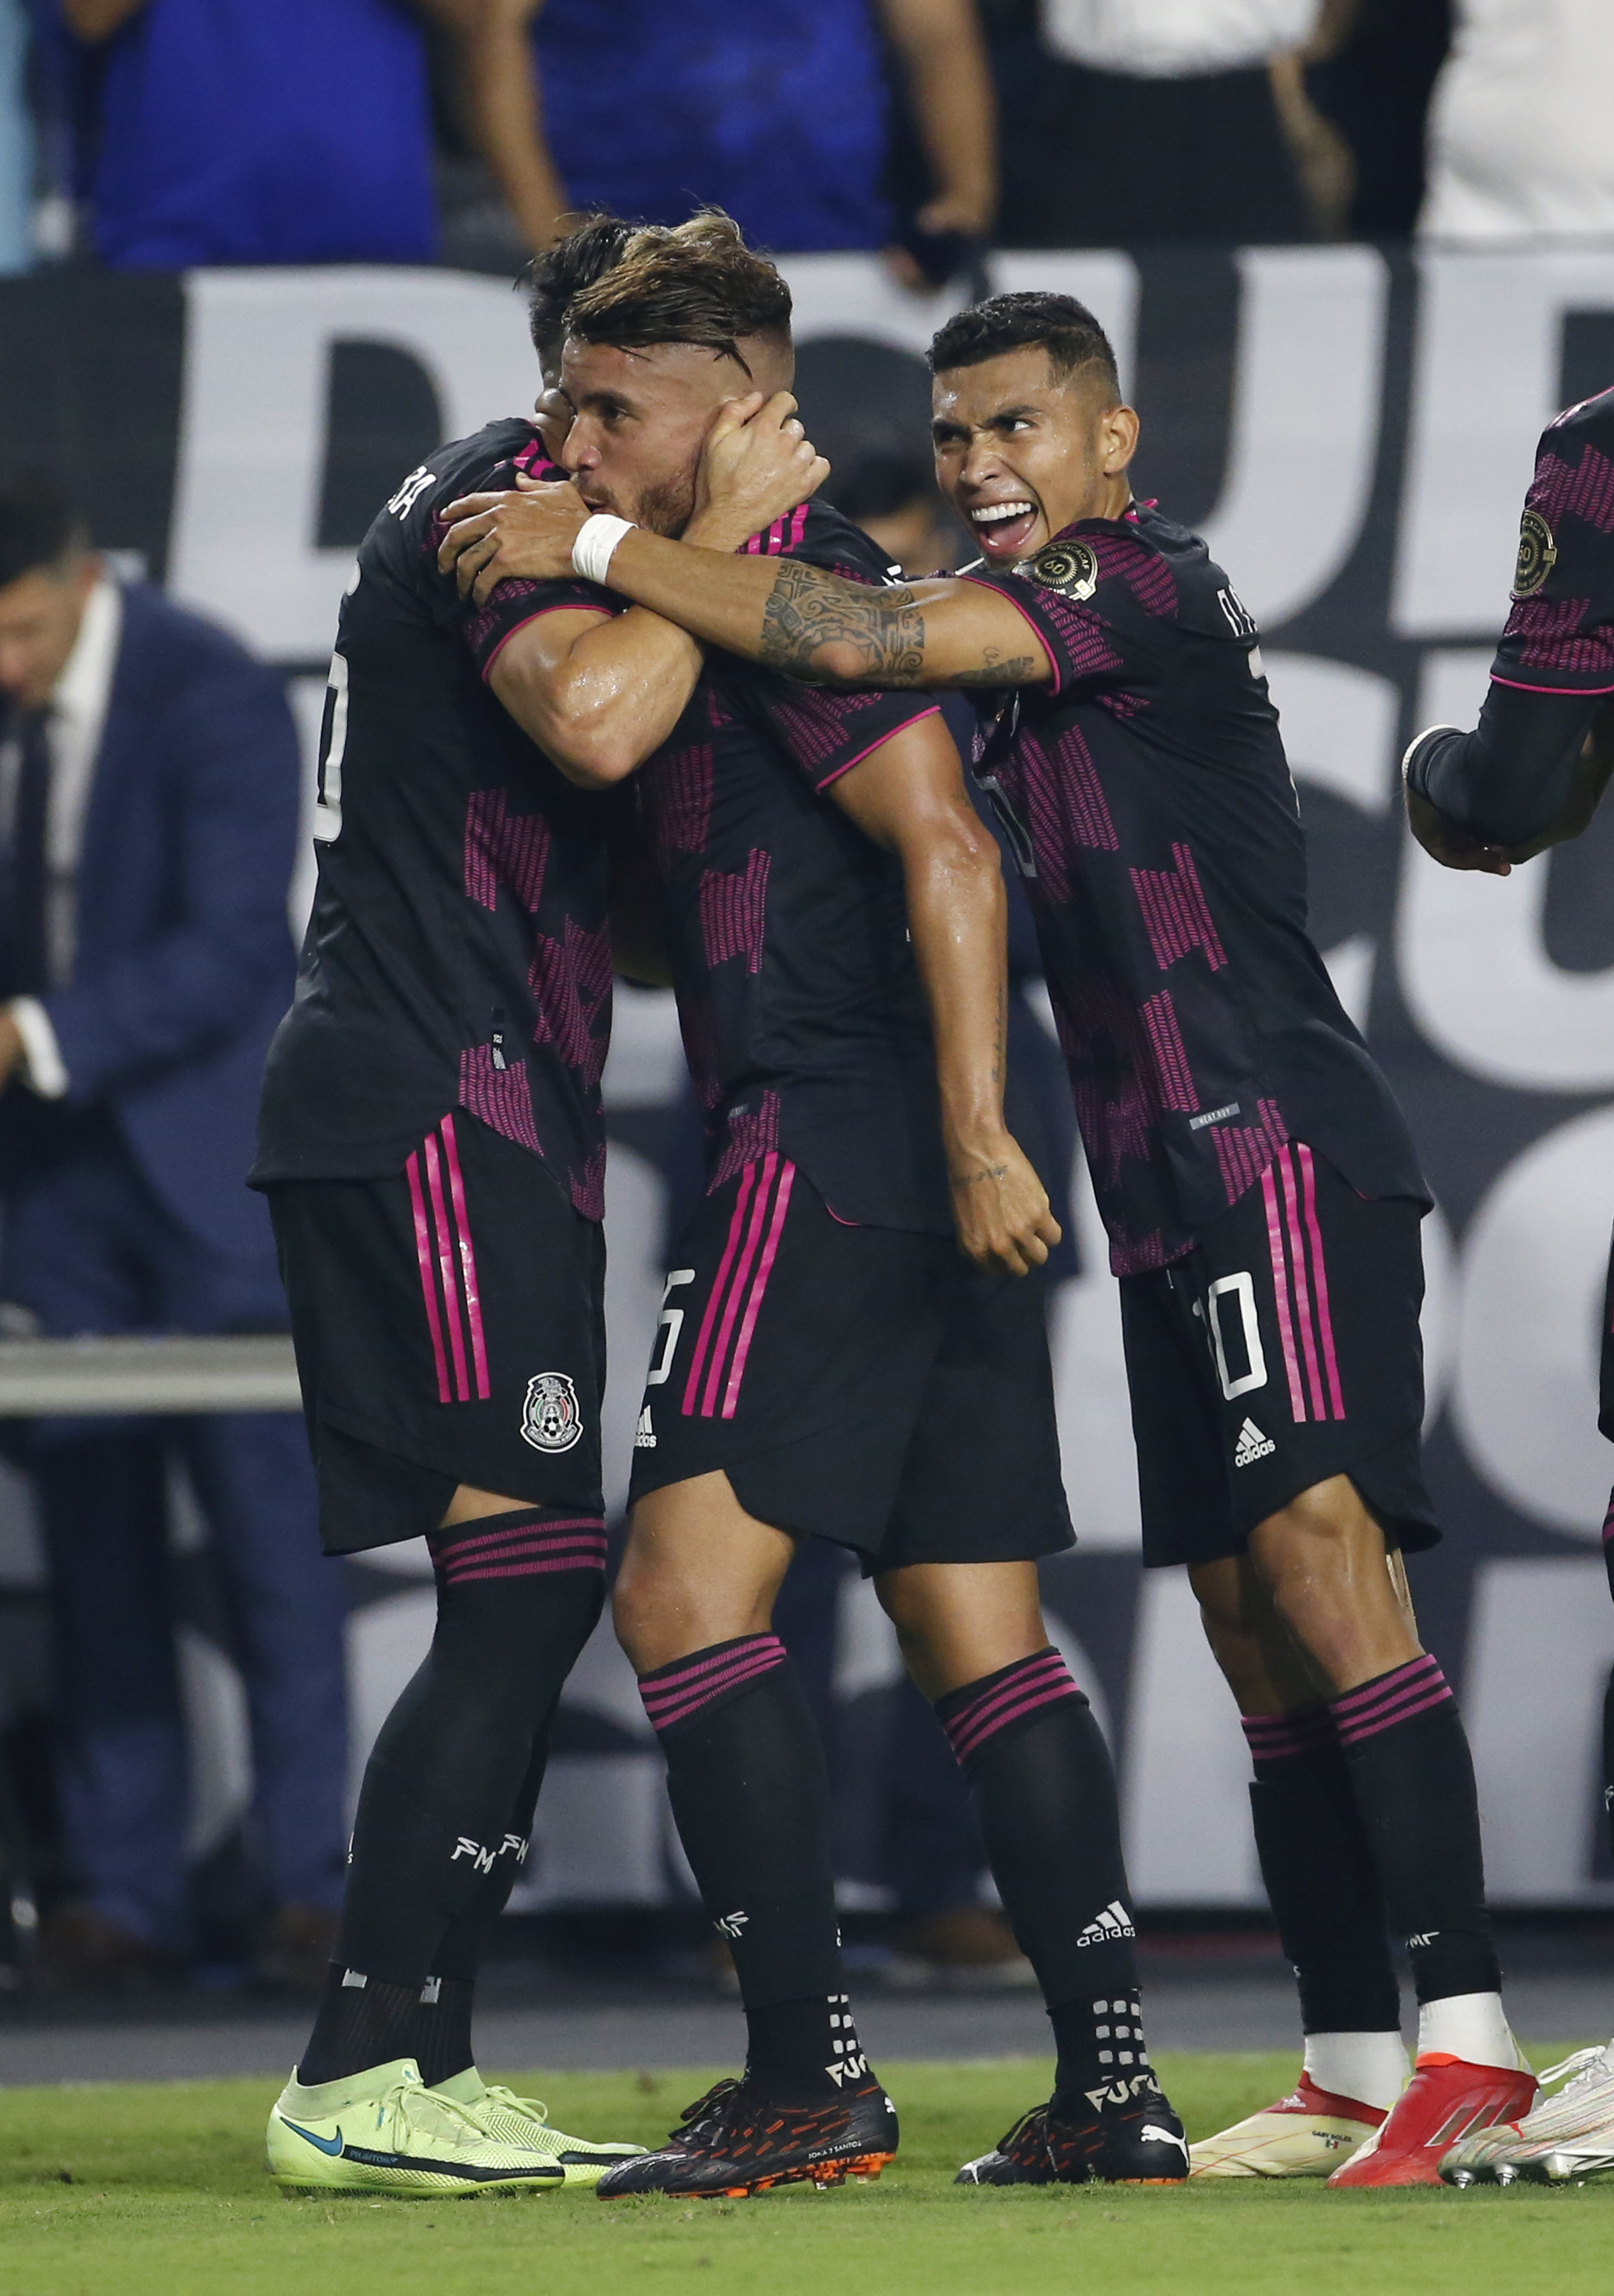 Jonathan Dos Santos #6 of Mexico (C) celebrates with Hector Herrera #16 and Orbelin Pineda #10 of Mexico after scoring a goal against Honduras during the first half of the Concacaf Gold Cup quarterfinal match at State Farm Stadium on July 24, 2021 in Glendale, Arizona.